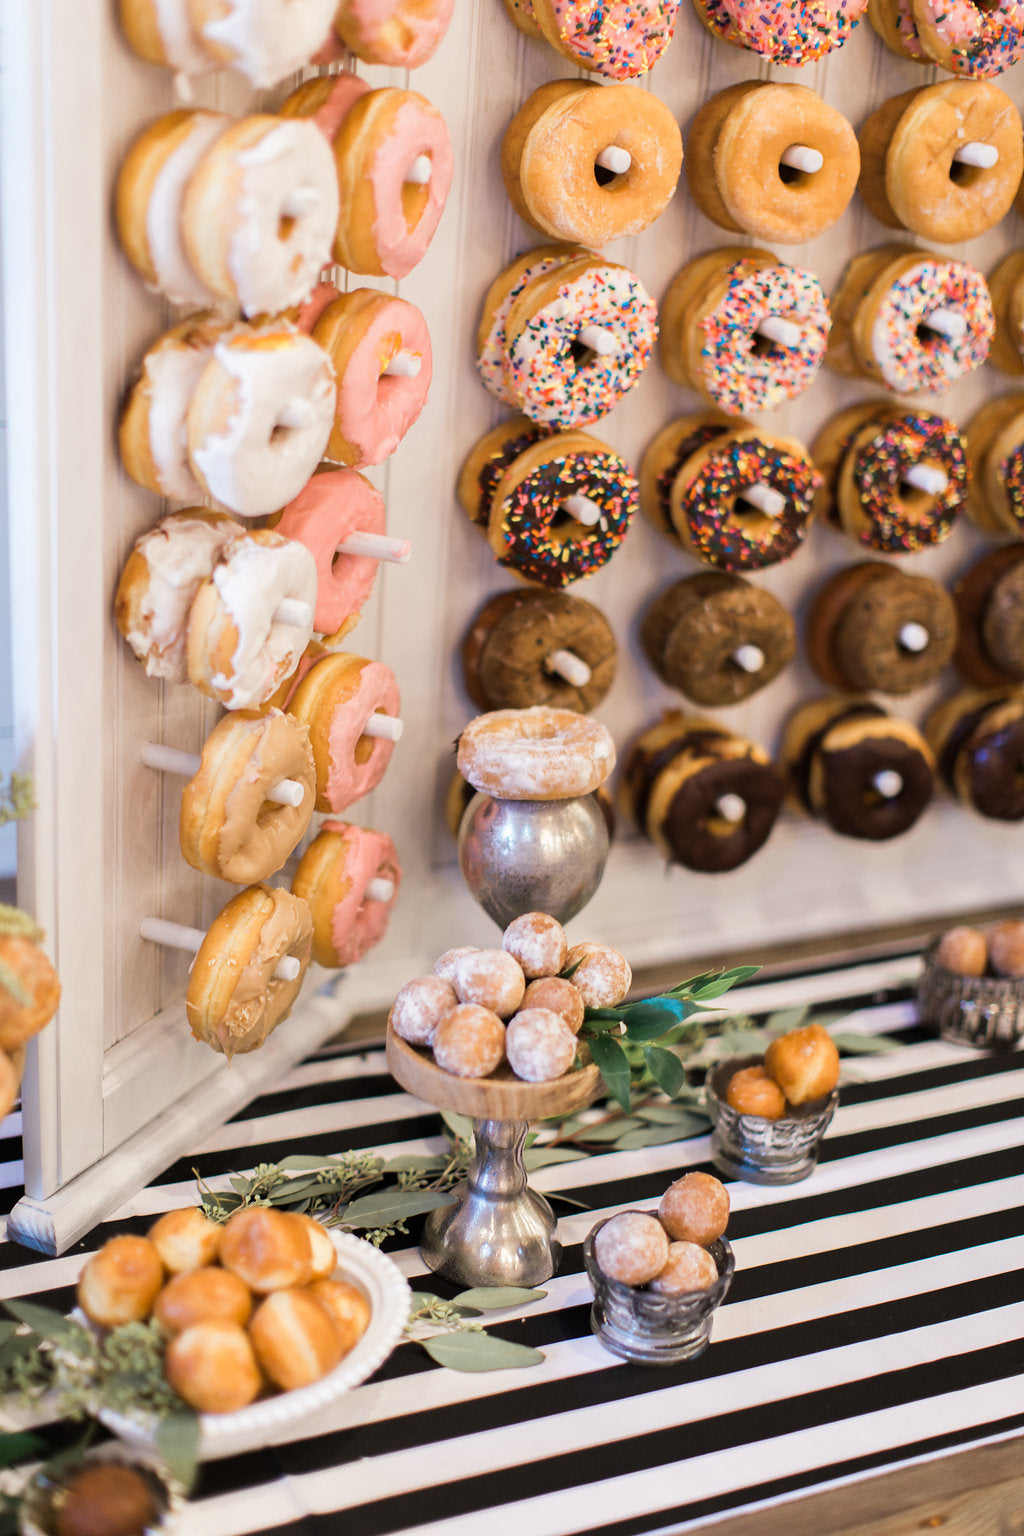 Doughnut Wall   Incorporating Donuts Into Your Wedding   My Wedding Favors